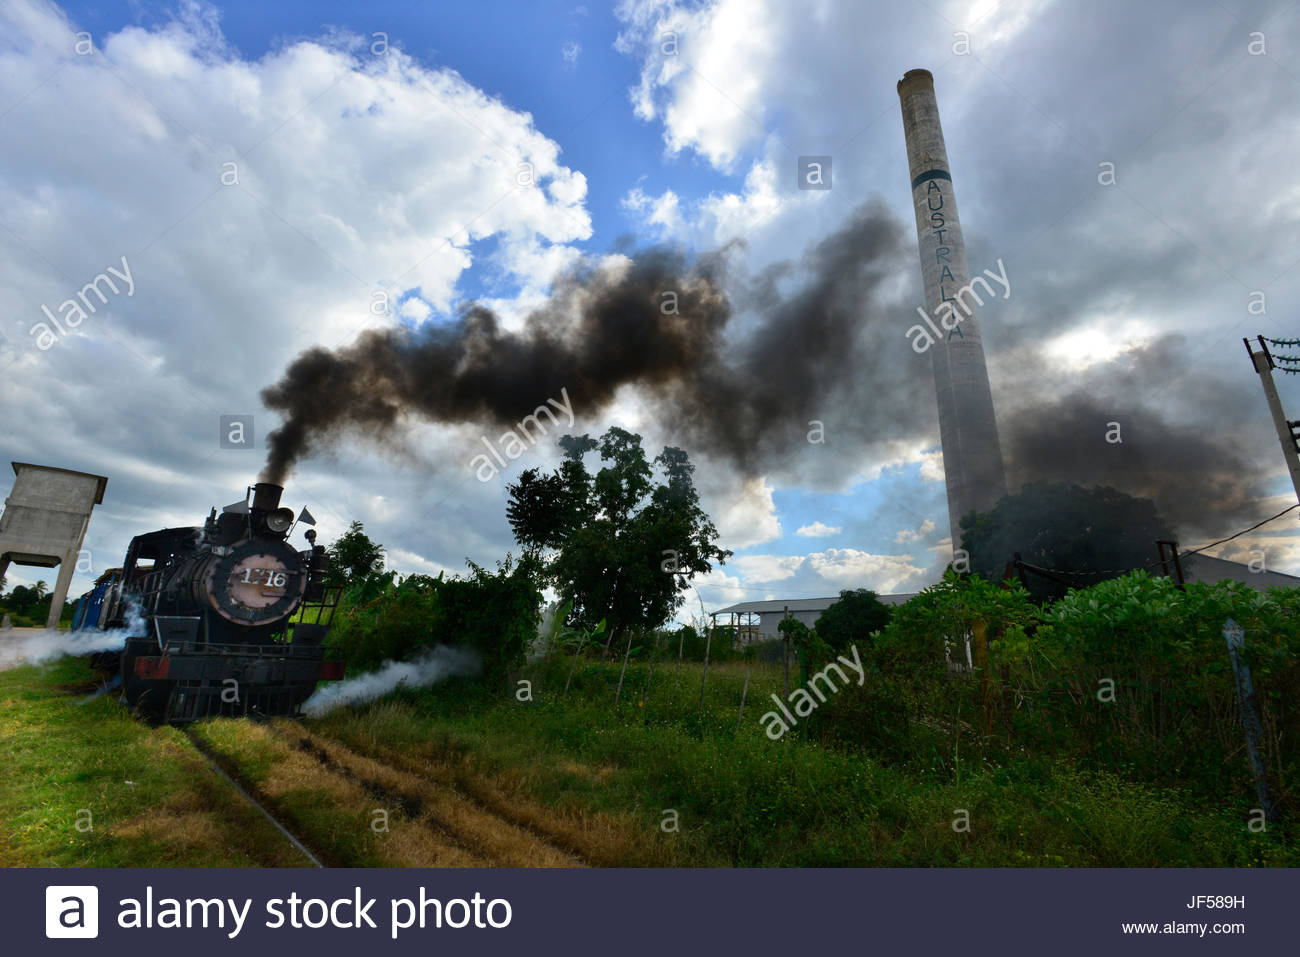 A 1913 steam locomotive that was used in the transport of sugarcane steams past a disused sugar factory smokestack. - Stock Image